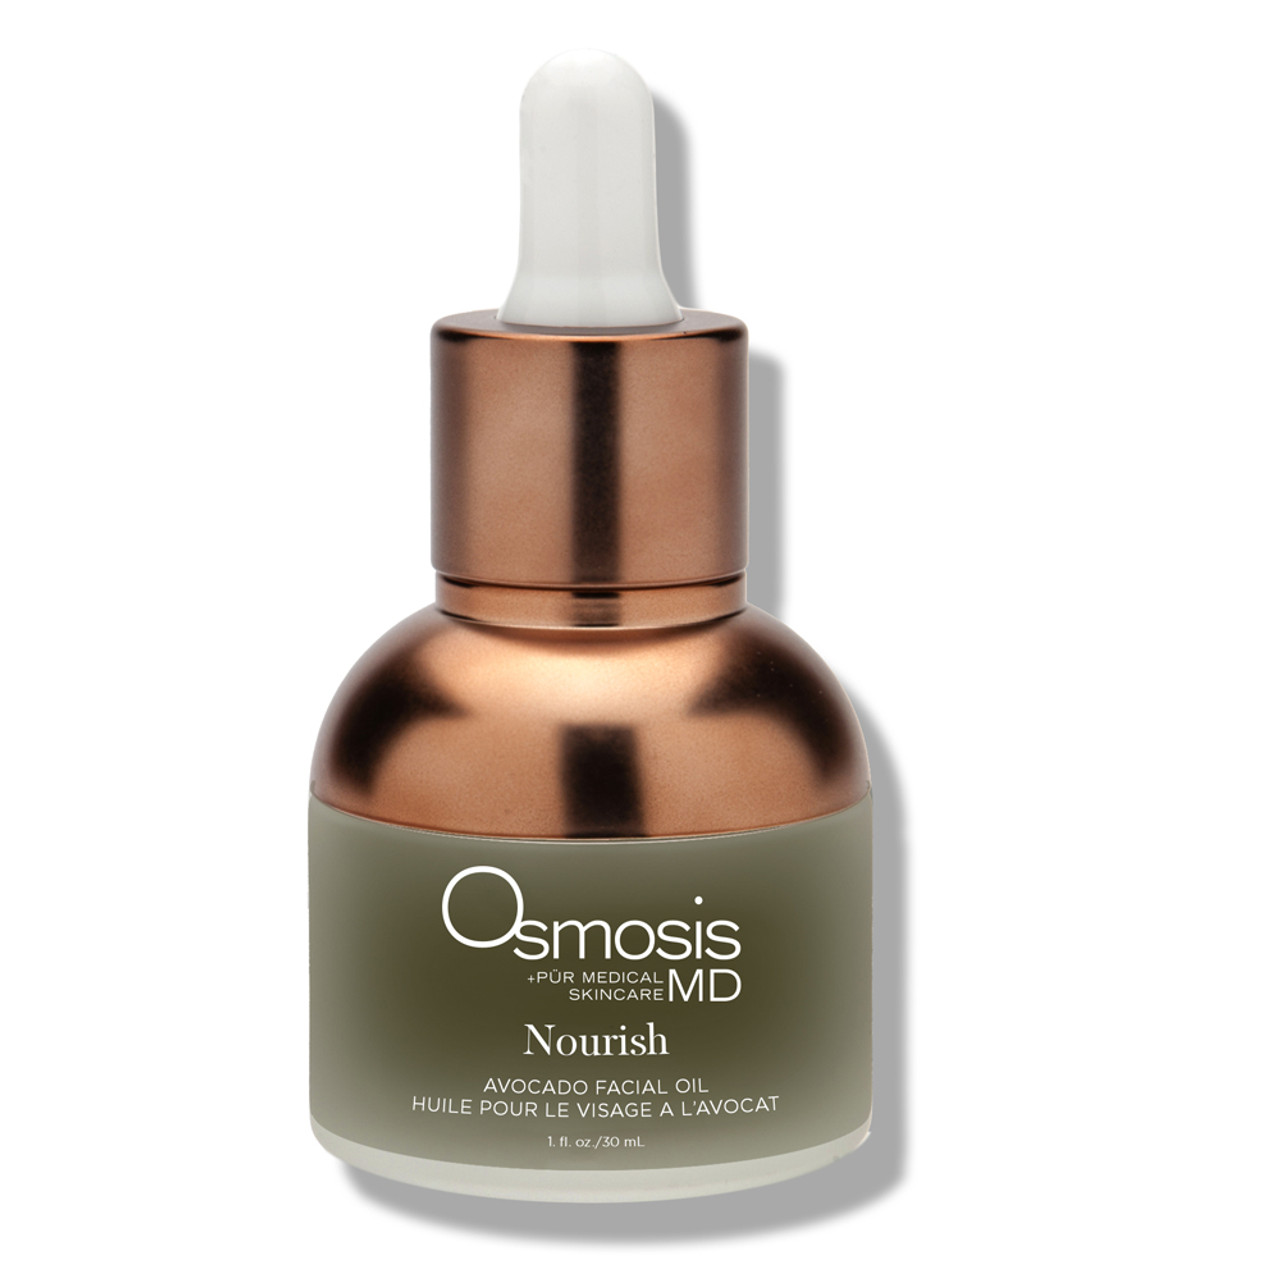 Osmosis +Skincare MD Nourish - Avocado Facial Oil